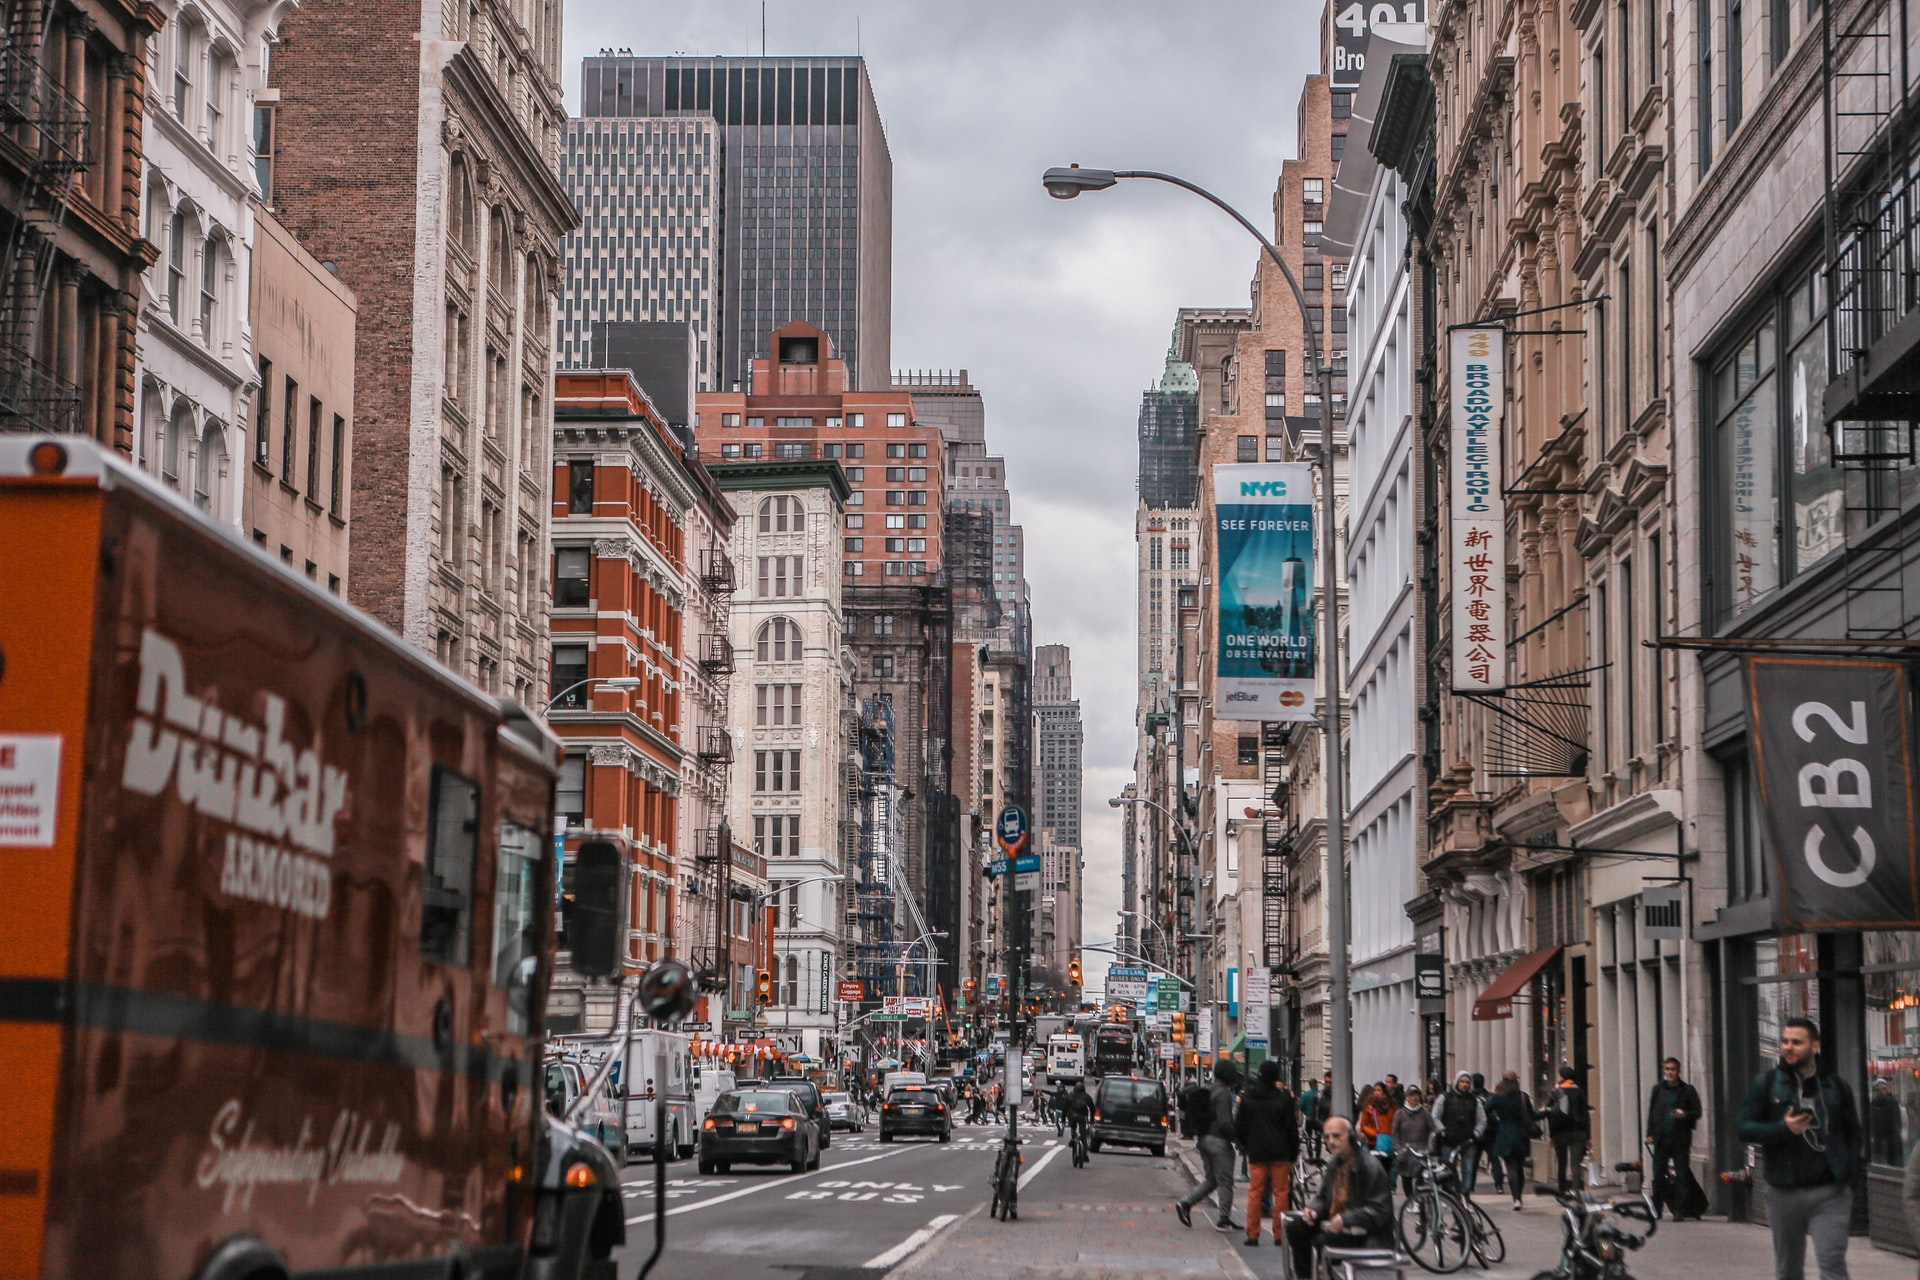 Busy everyday street life of NYC.